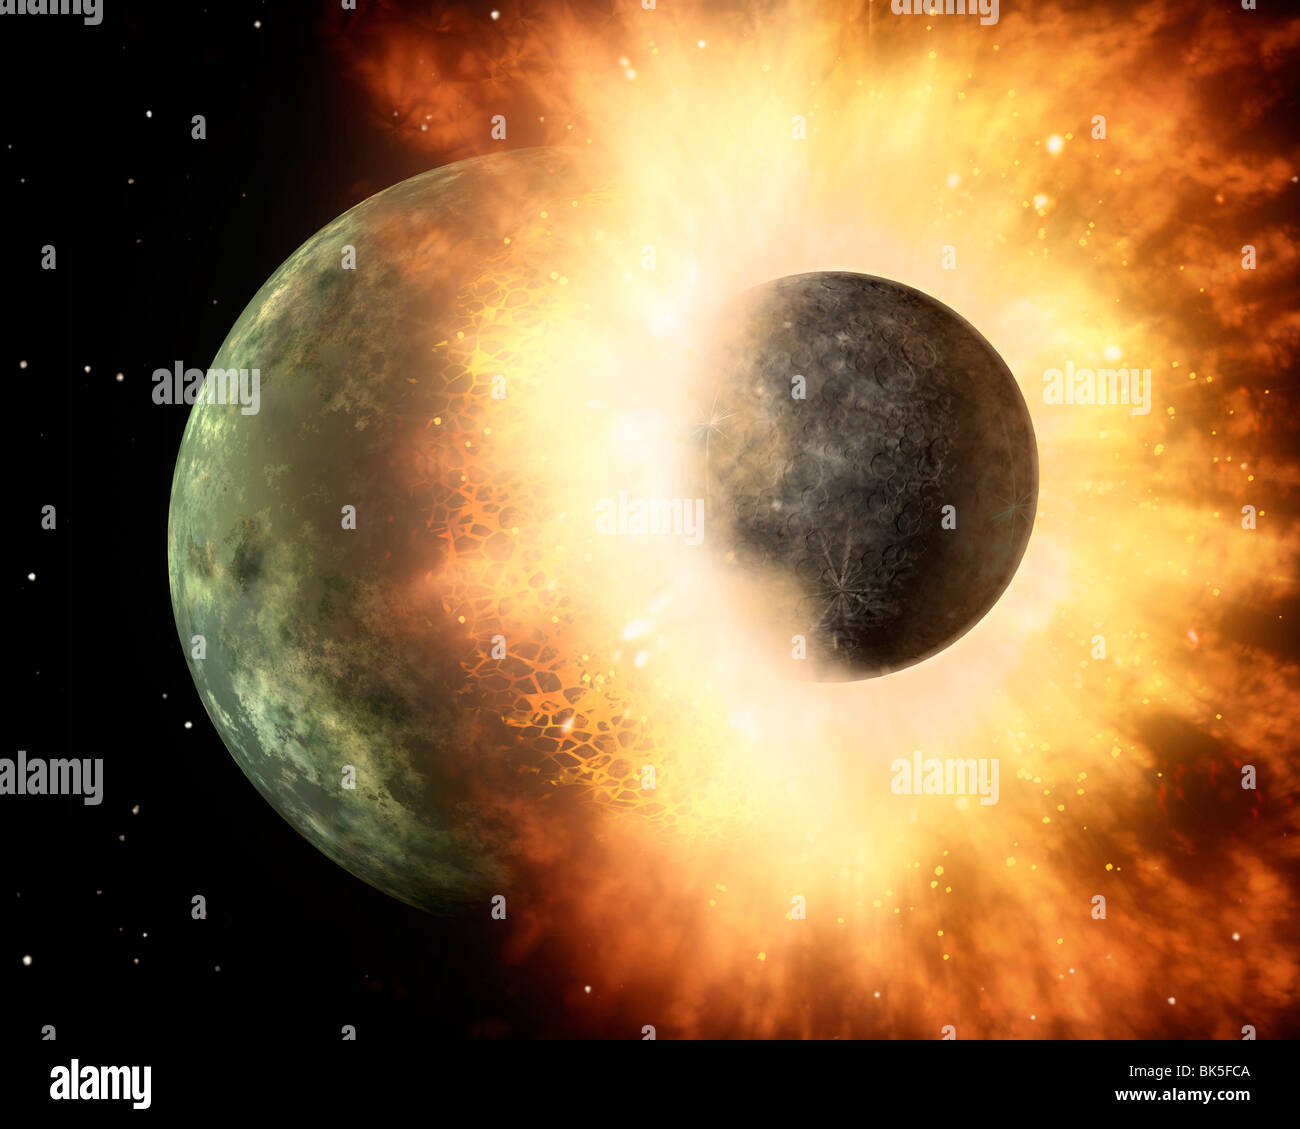 This artist's concept shows a celestial body about the size of our moon slamming at great speed into a body - Stock Image